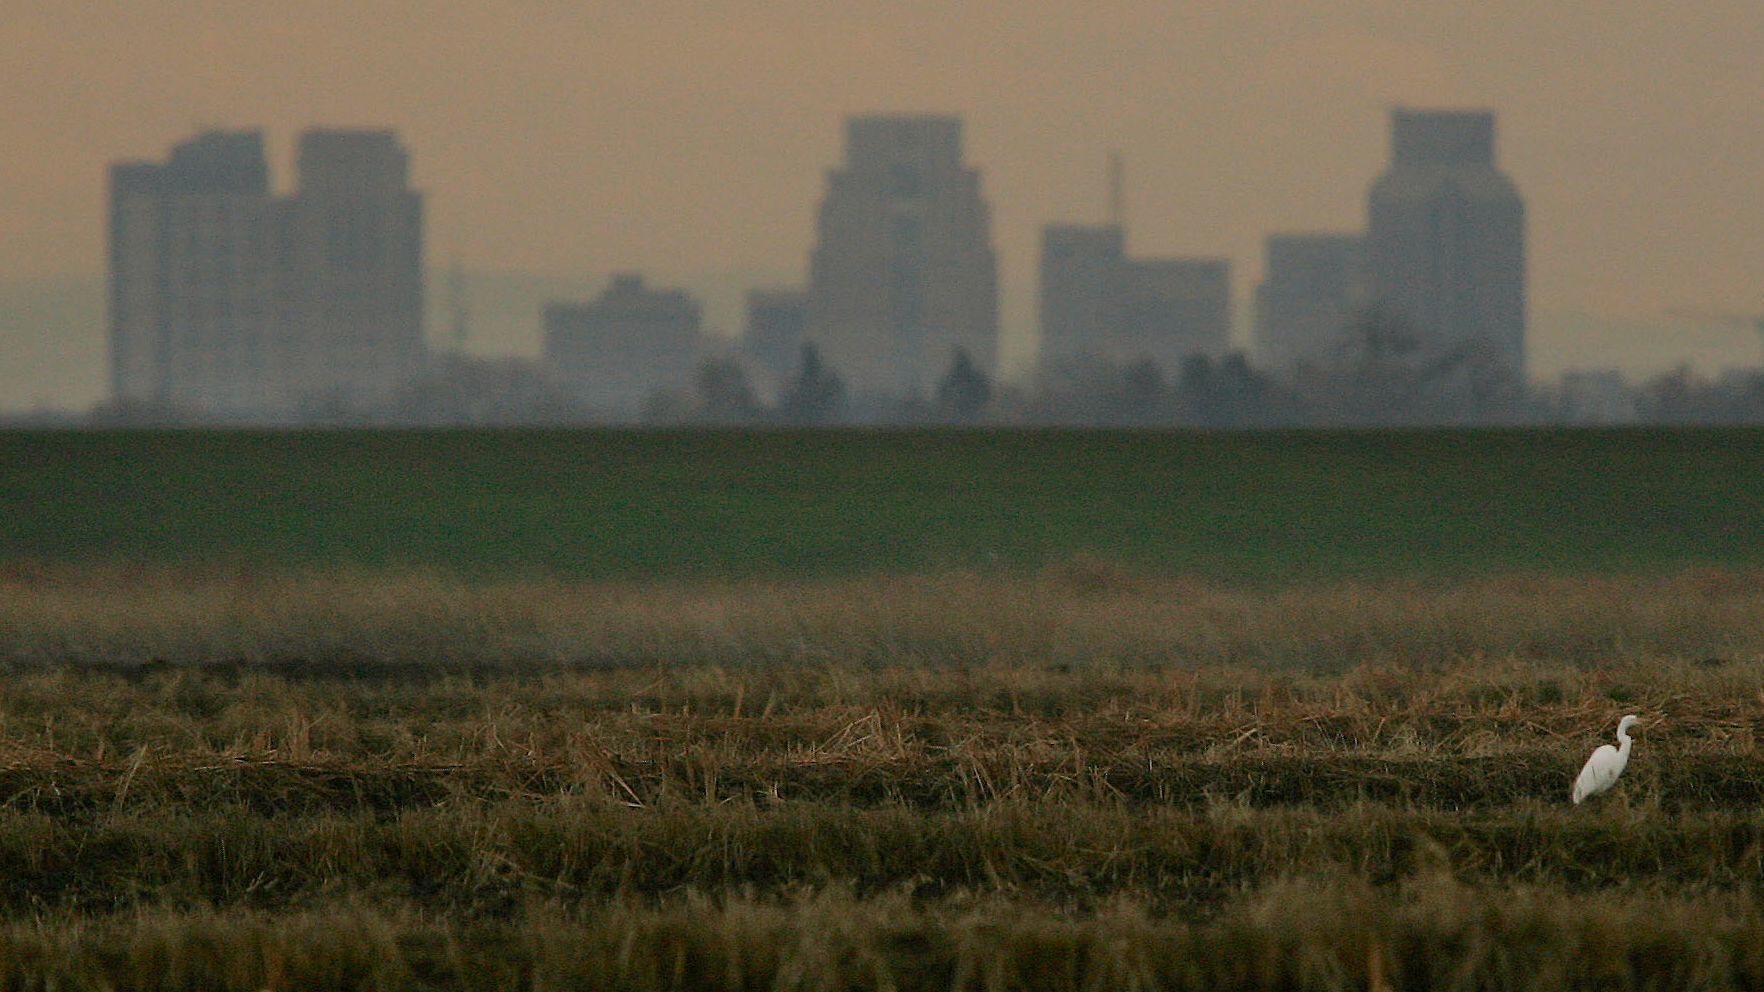 The Sacramento city skyline creates a backdrop for an egret resting in a  rice field in 2005.